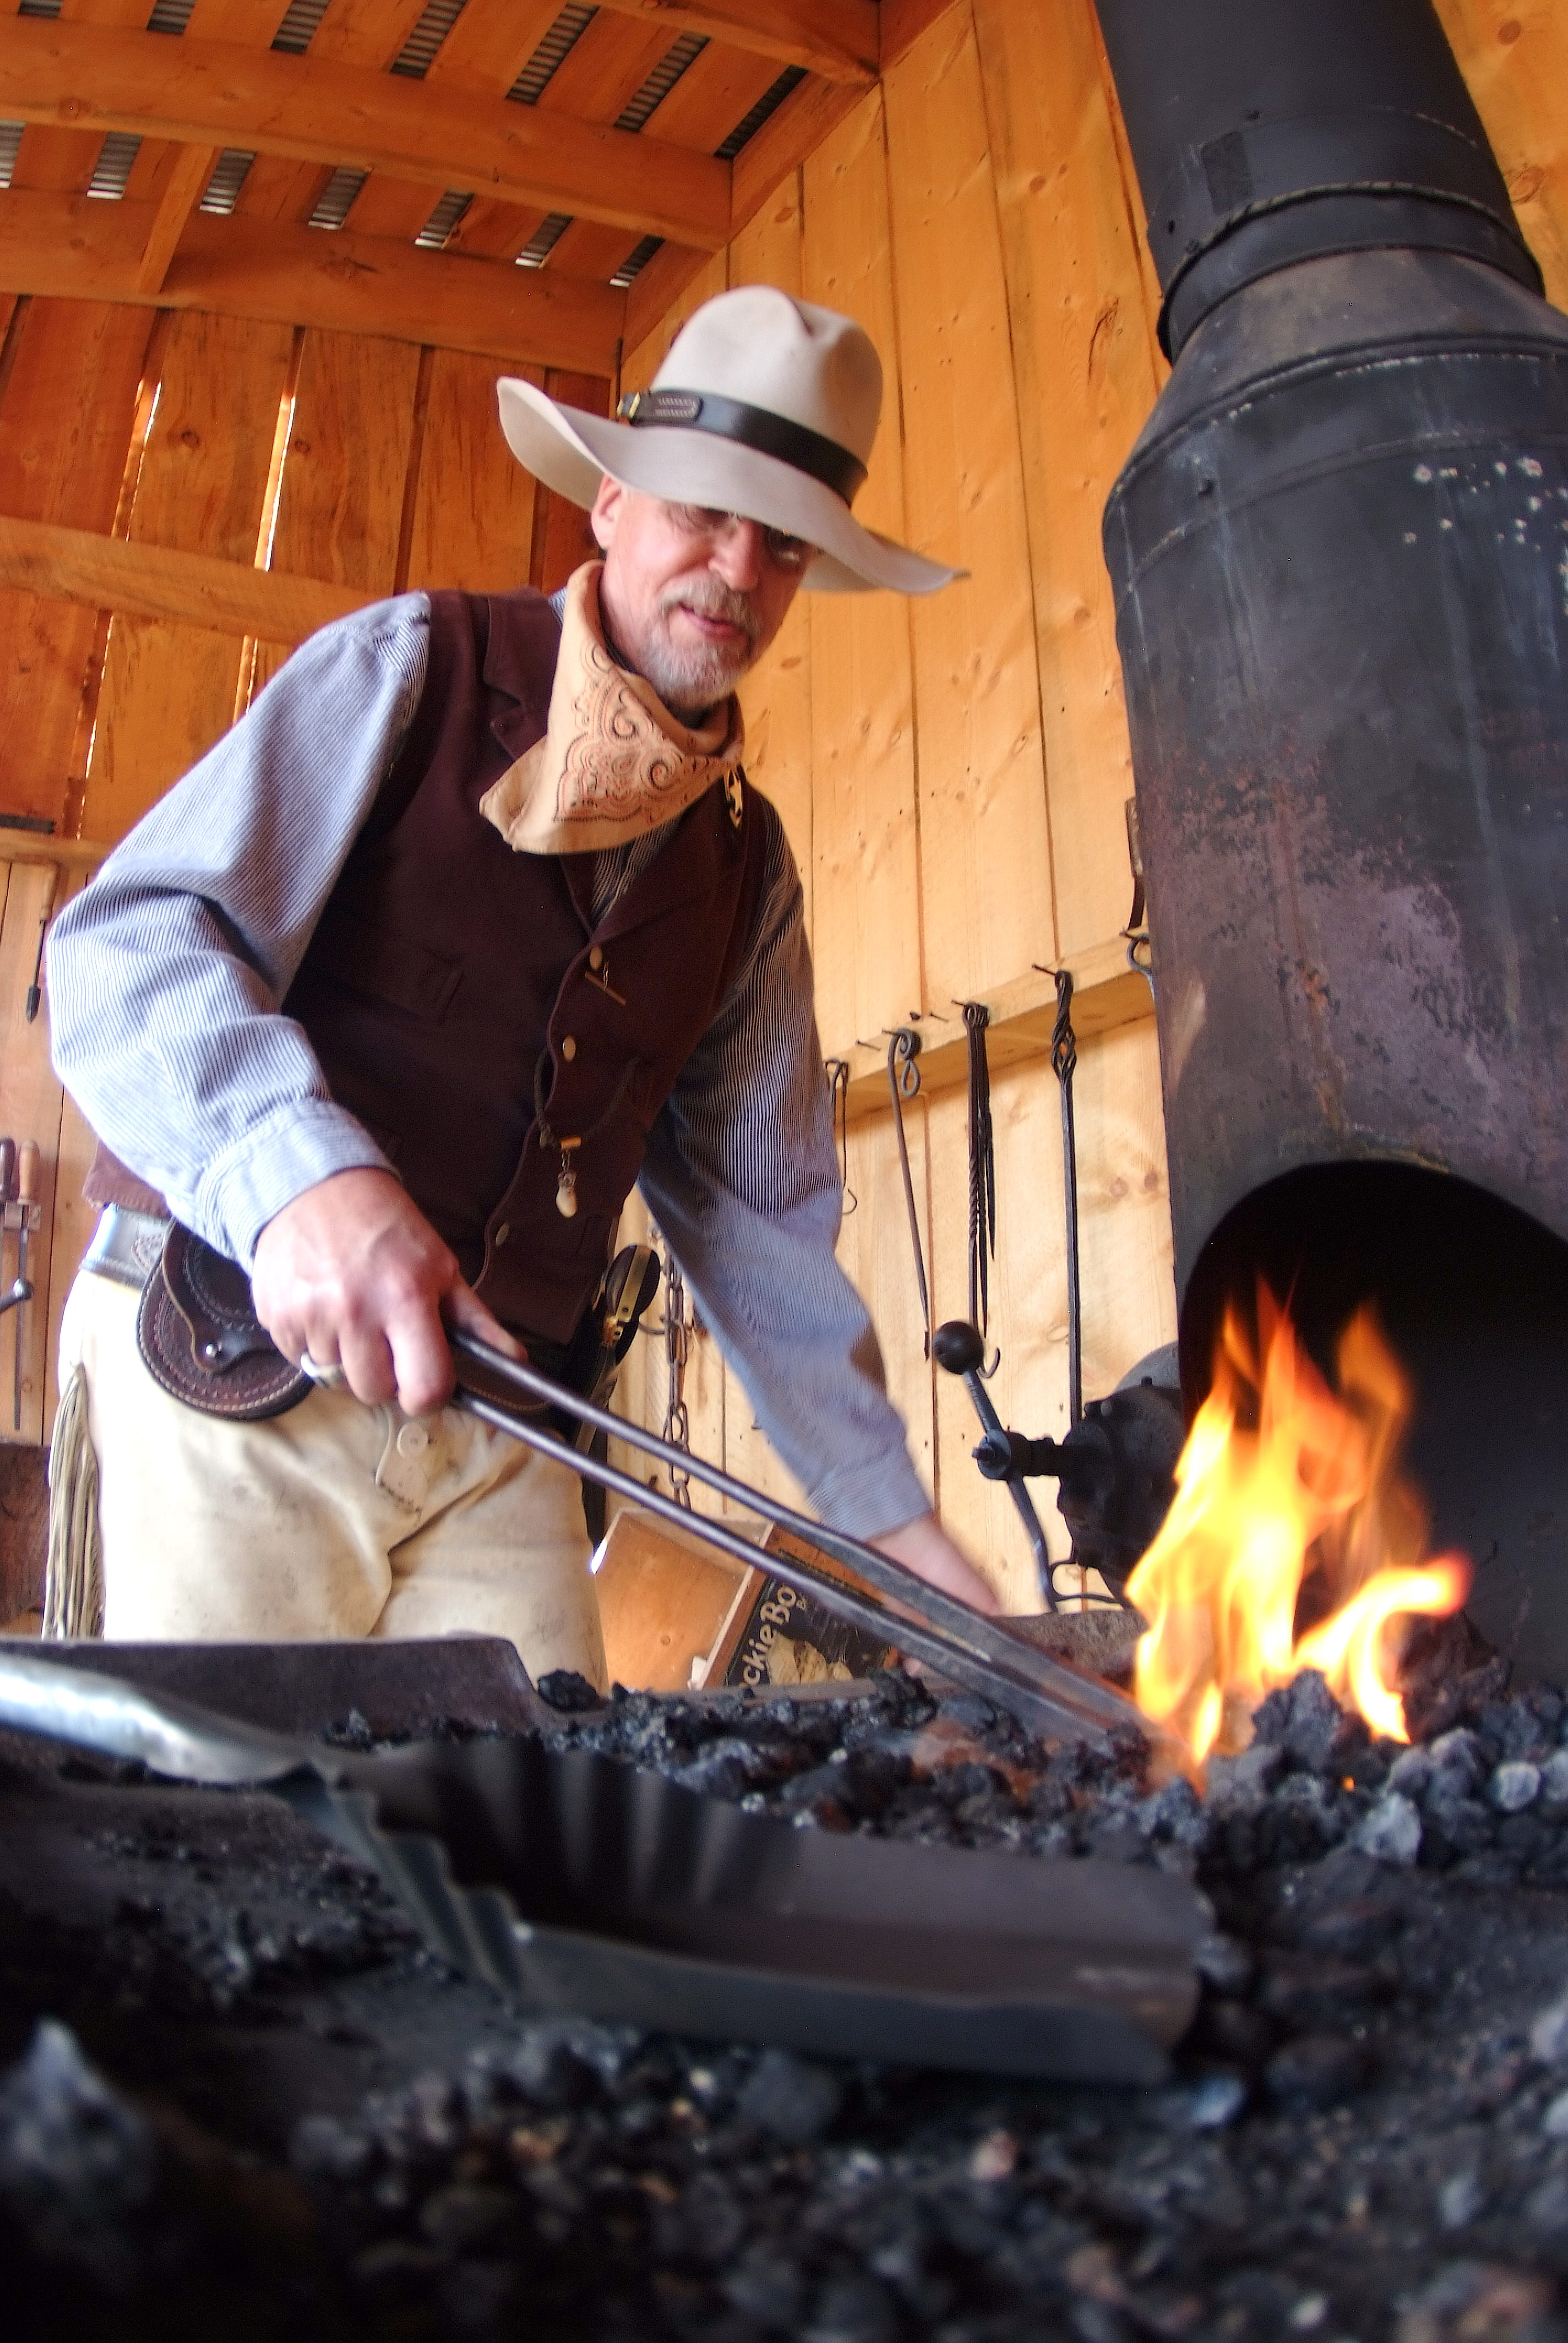 Another Four Mile docent and blacksmith works the forge